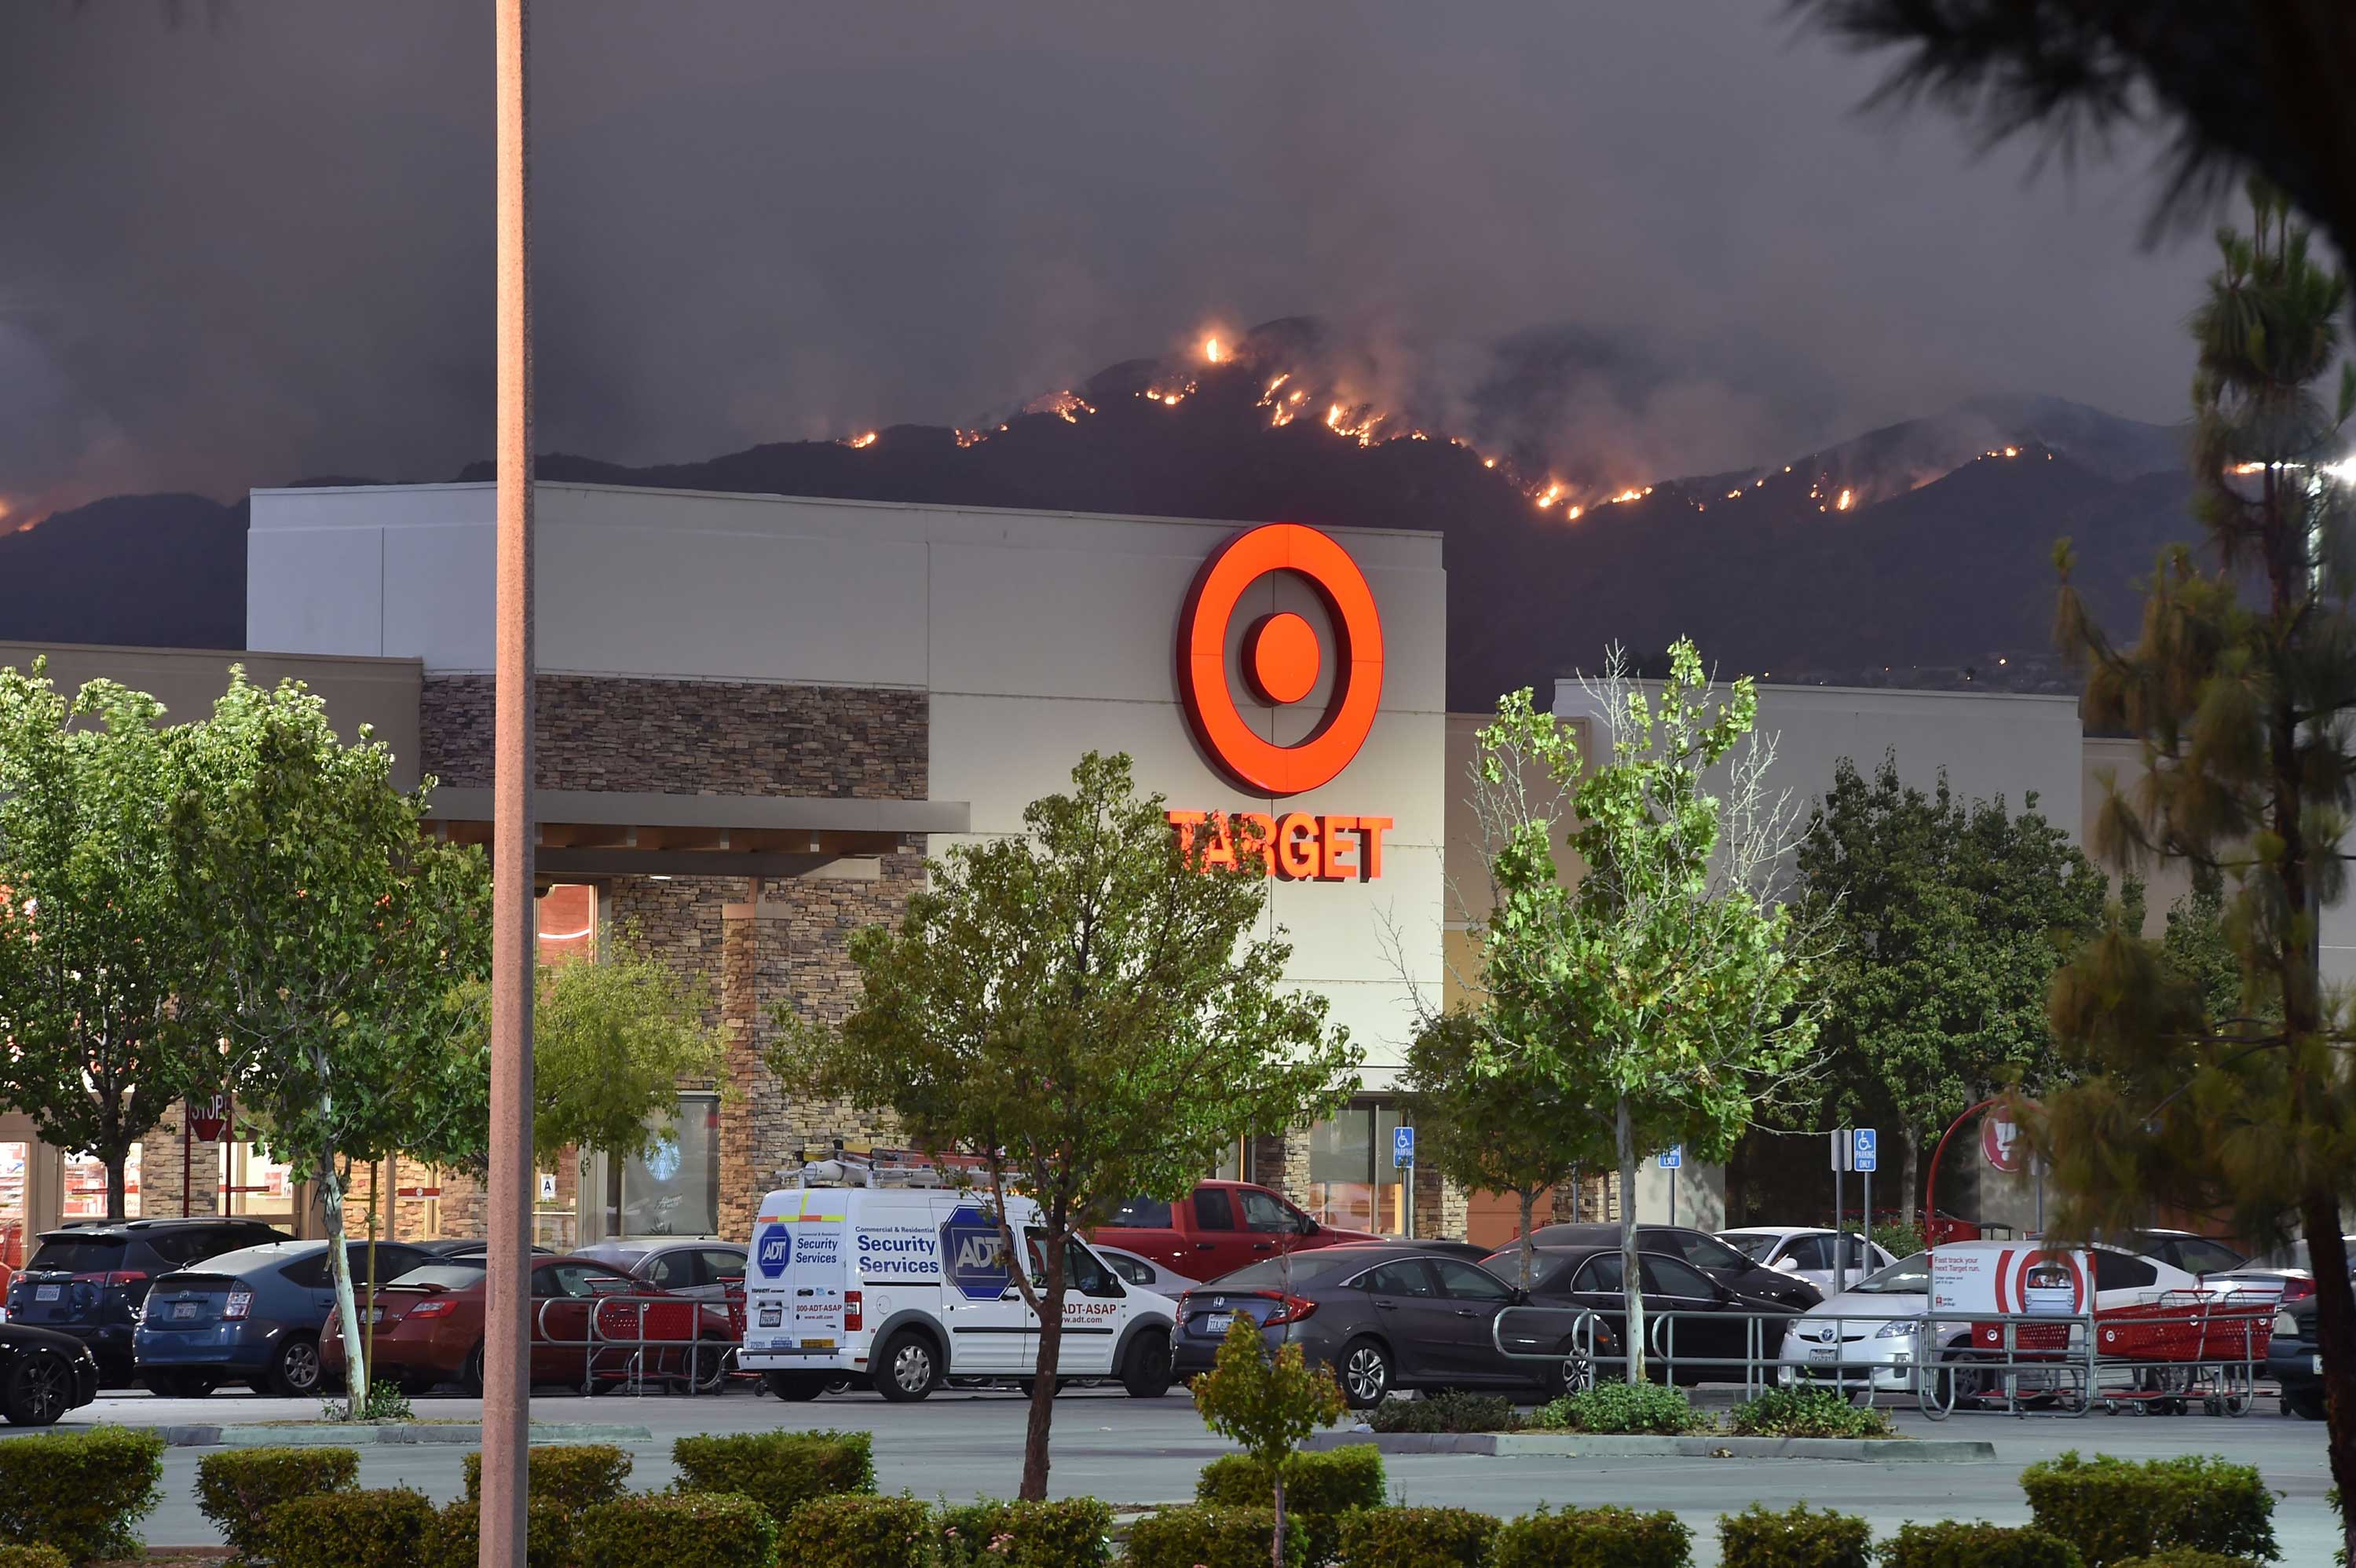 "<div class=""meta image-caption""><div class=""origin-logo origin-image none""><span>none</span></div><span class=""caption-text"">The Holy Fire burns in the distant behind a Target store, near Lake Elsinore, California on August 8, 2018. (ROBYN BECK/AFP/Getty Images)</span></div>"